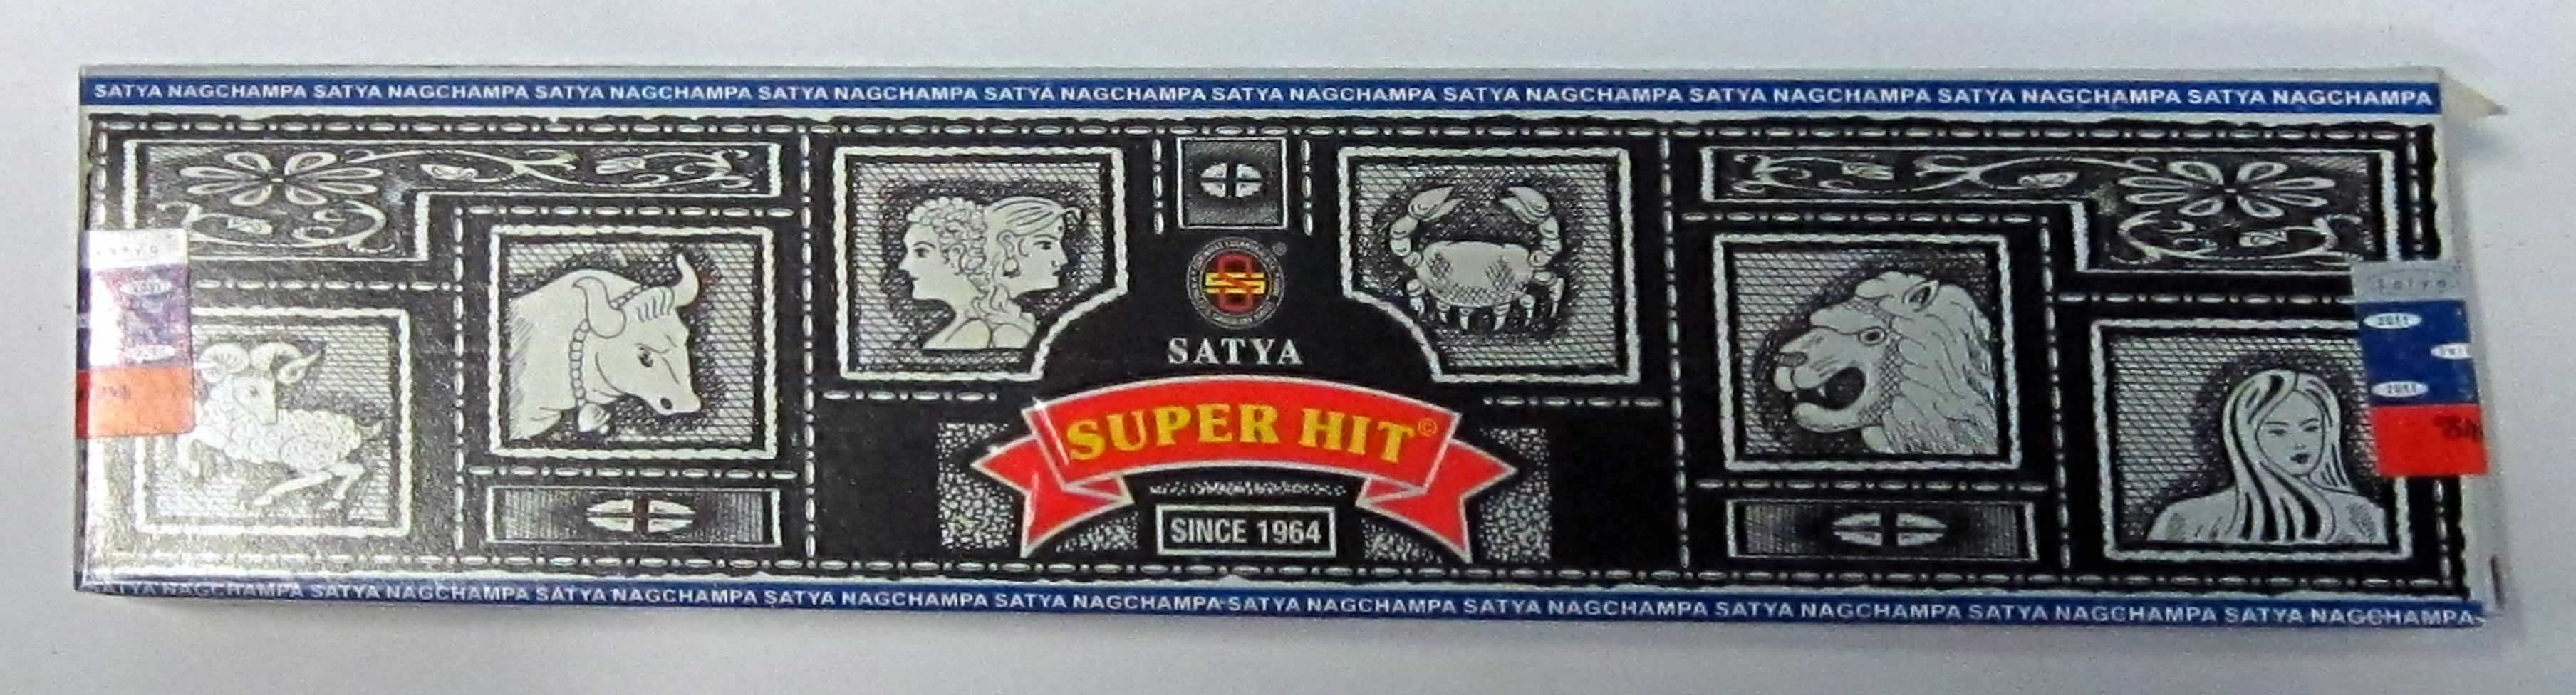 Super Hit - 40 grams